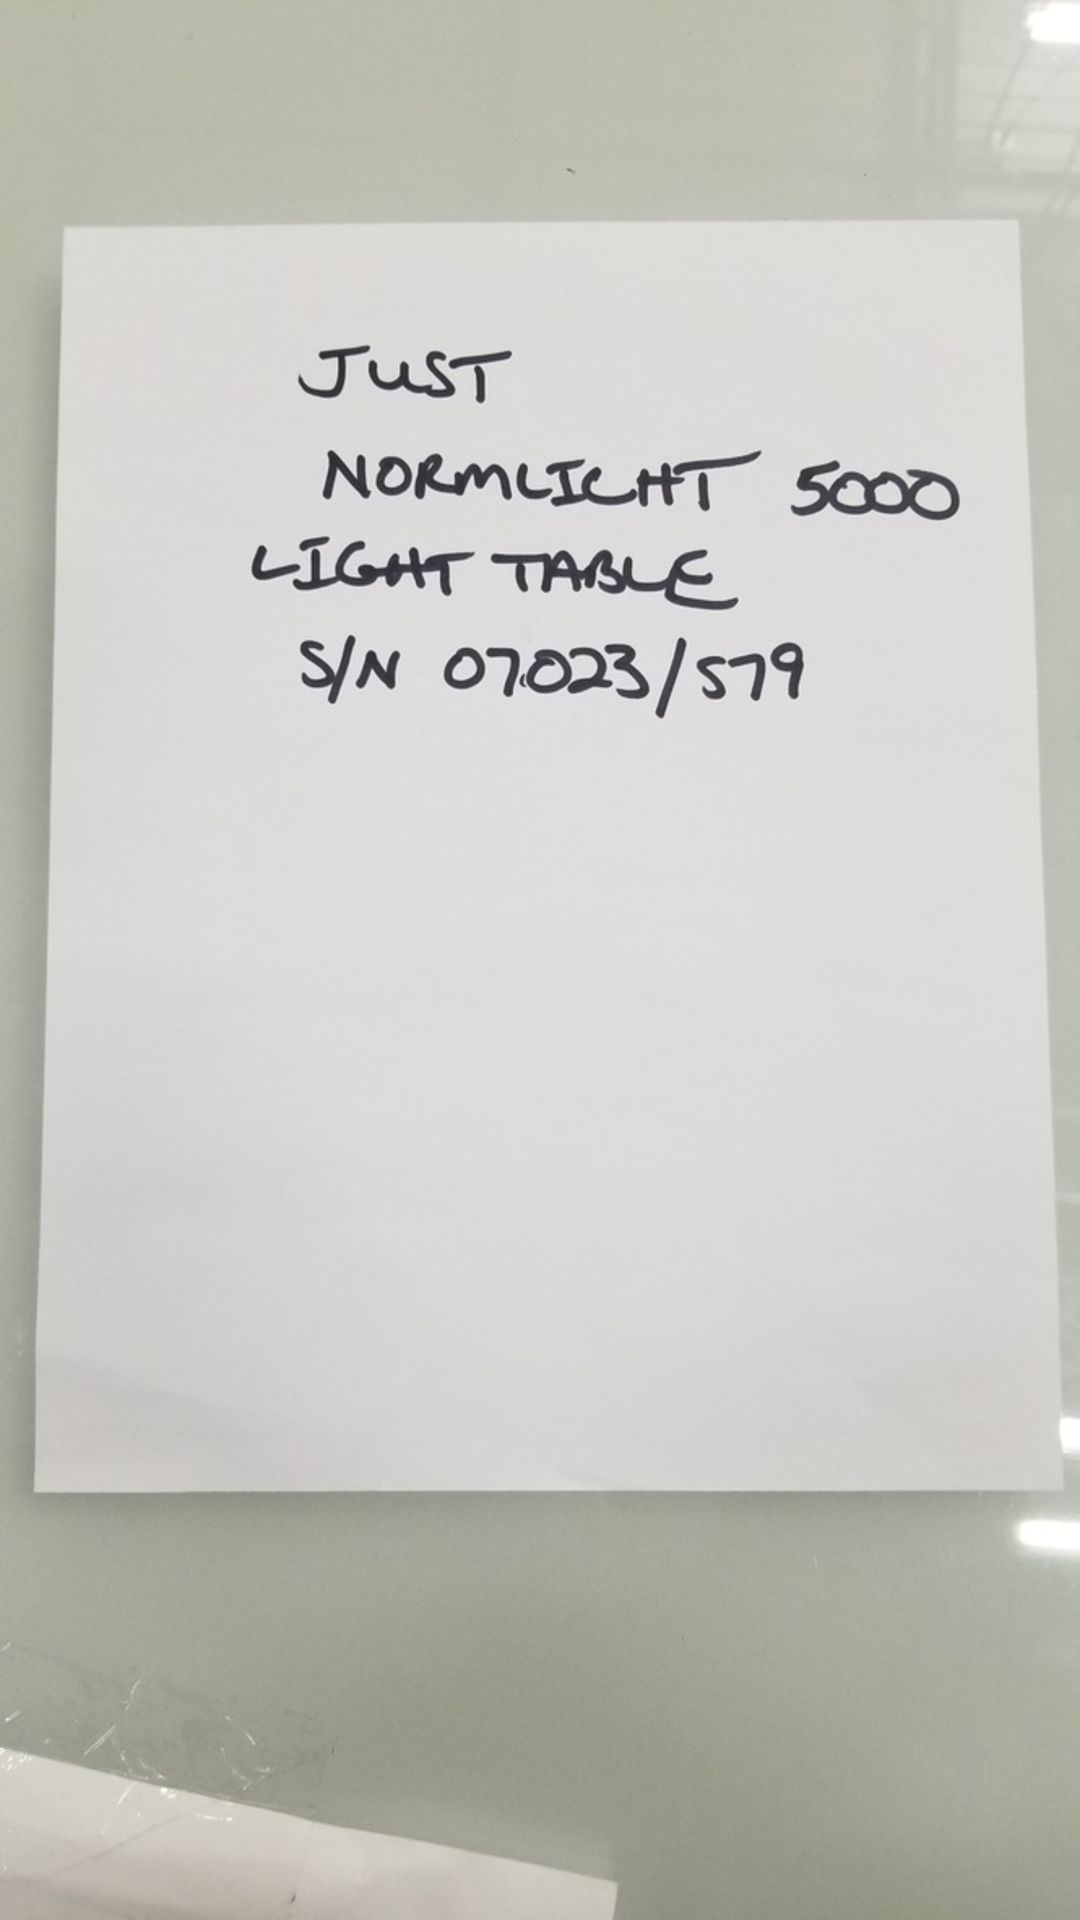 Lot 95 - Normlicht 5000 Light Table